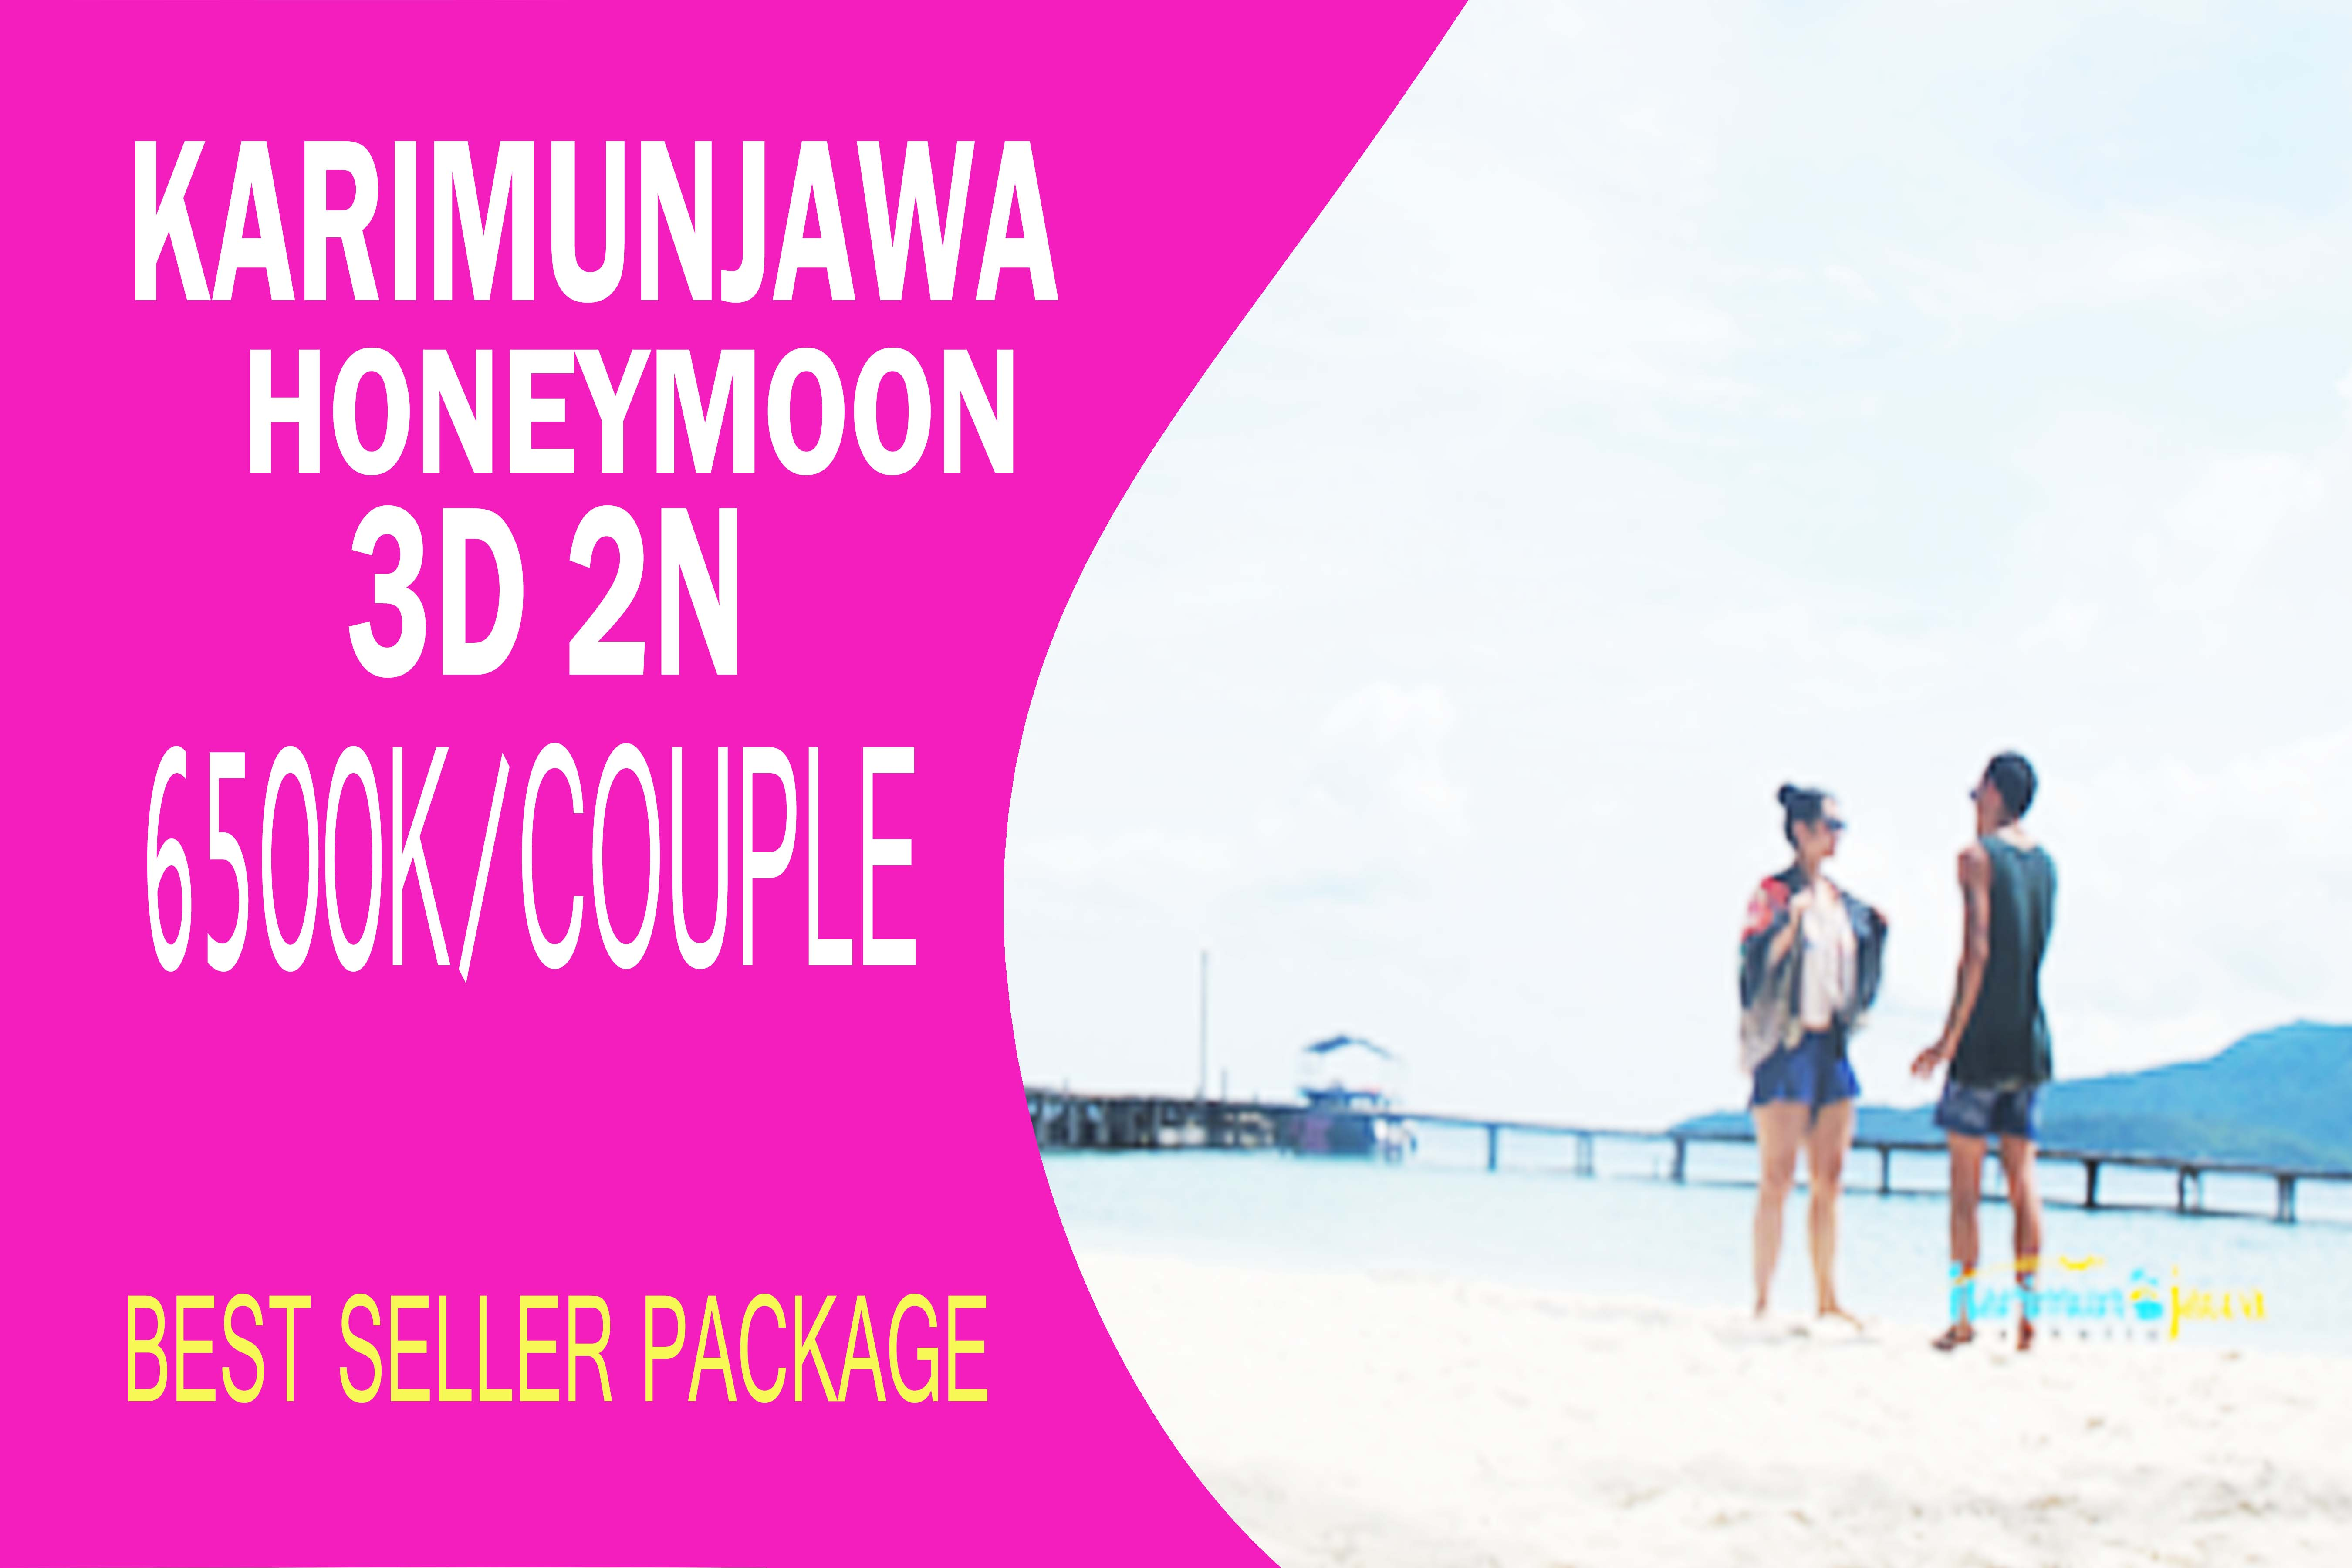 PAKET HONEYMOON KARIMUNJAWA BEST SELLER